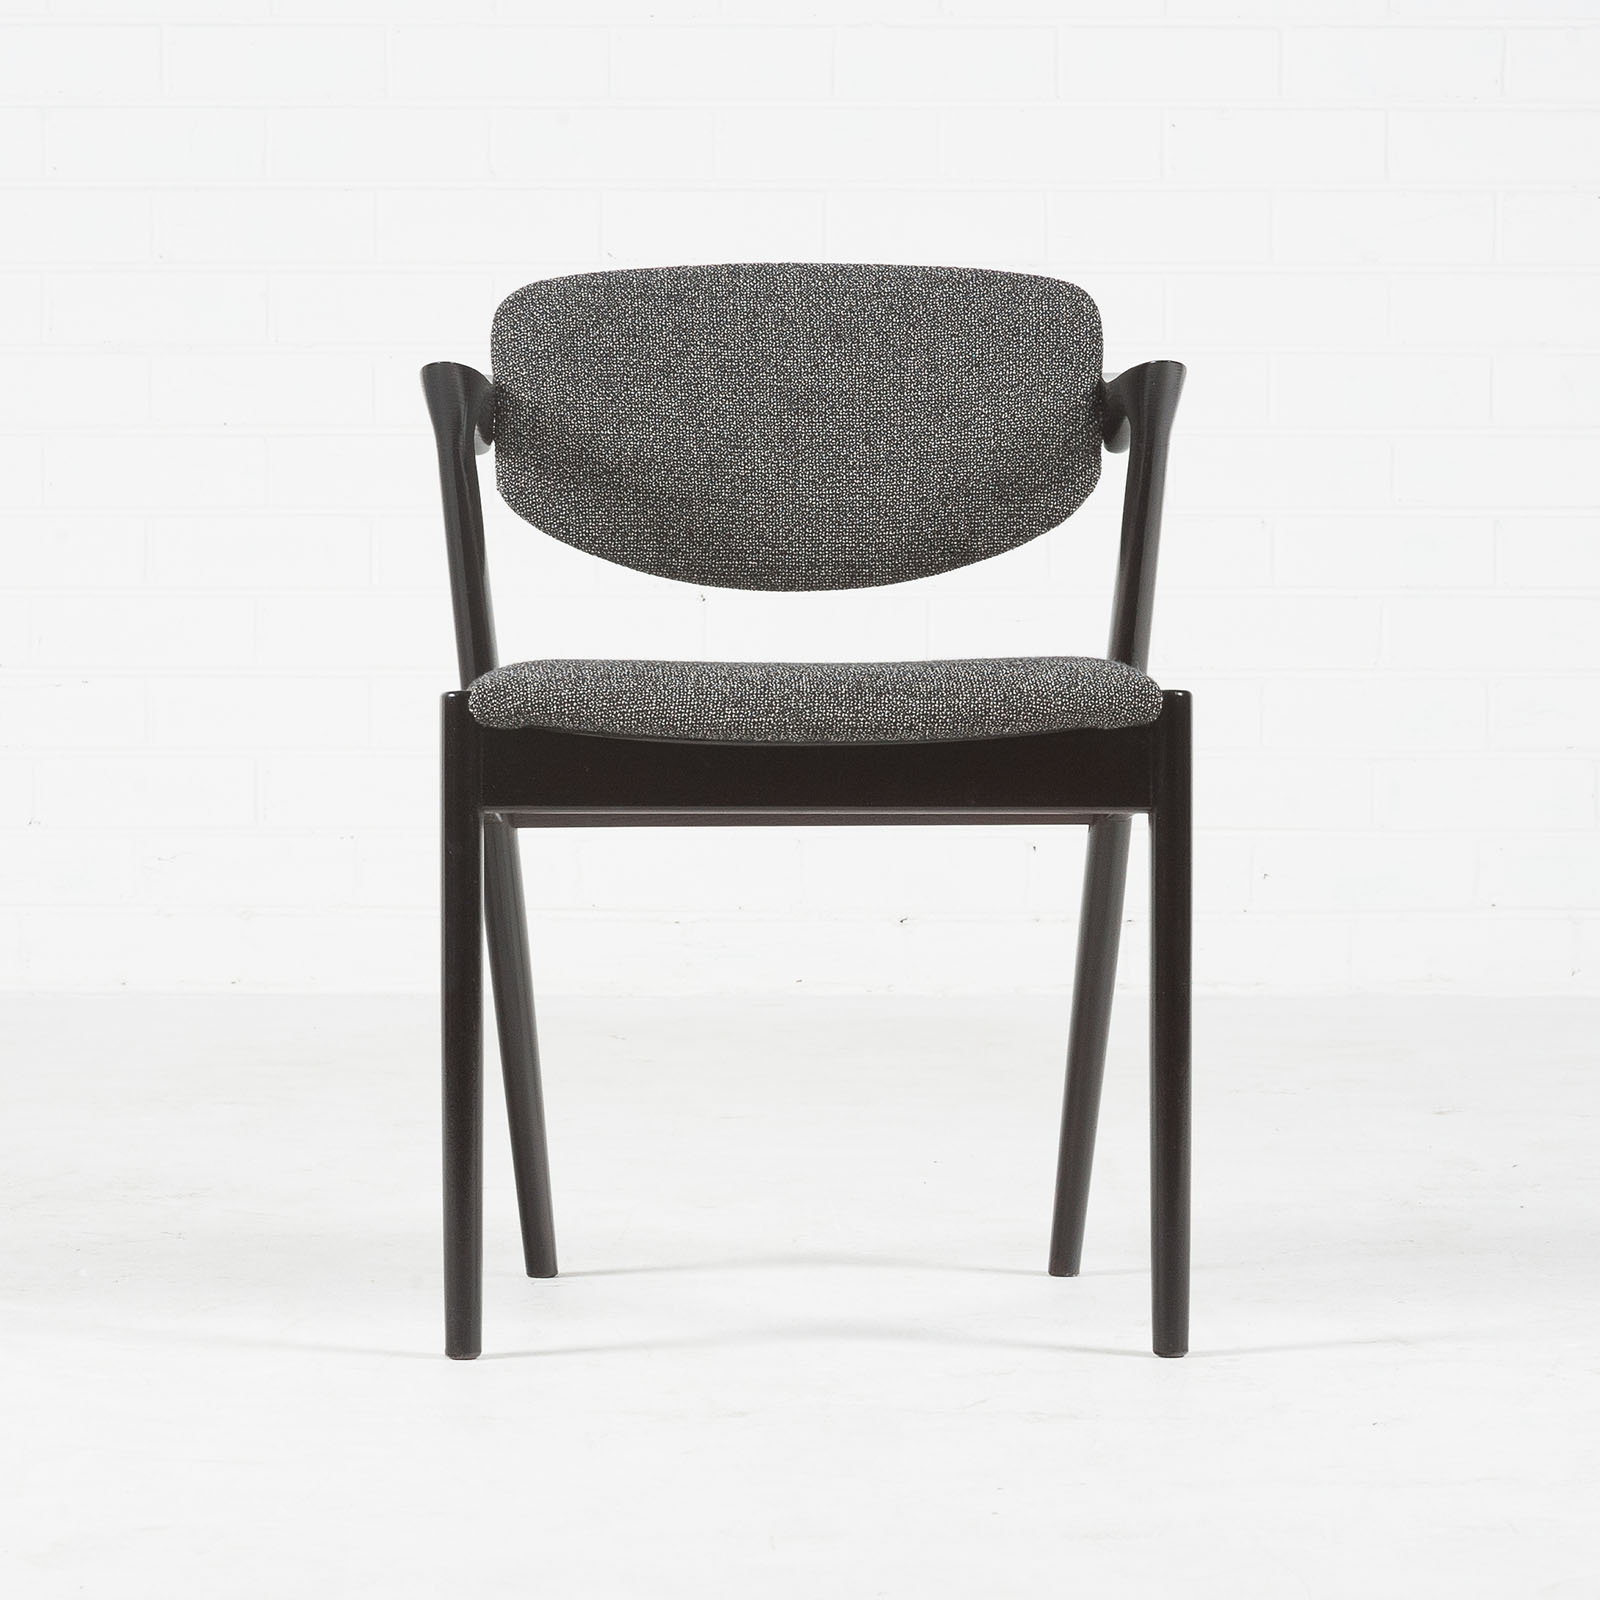 Set 4 Model 42 Dining Chairs By Kai Kristiansen In Stained Oak And New Kvadrat Upholstery 1959 Denmark 02